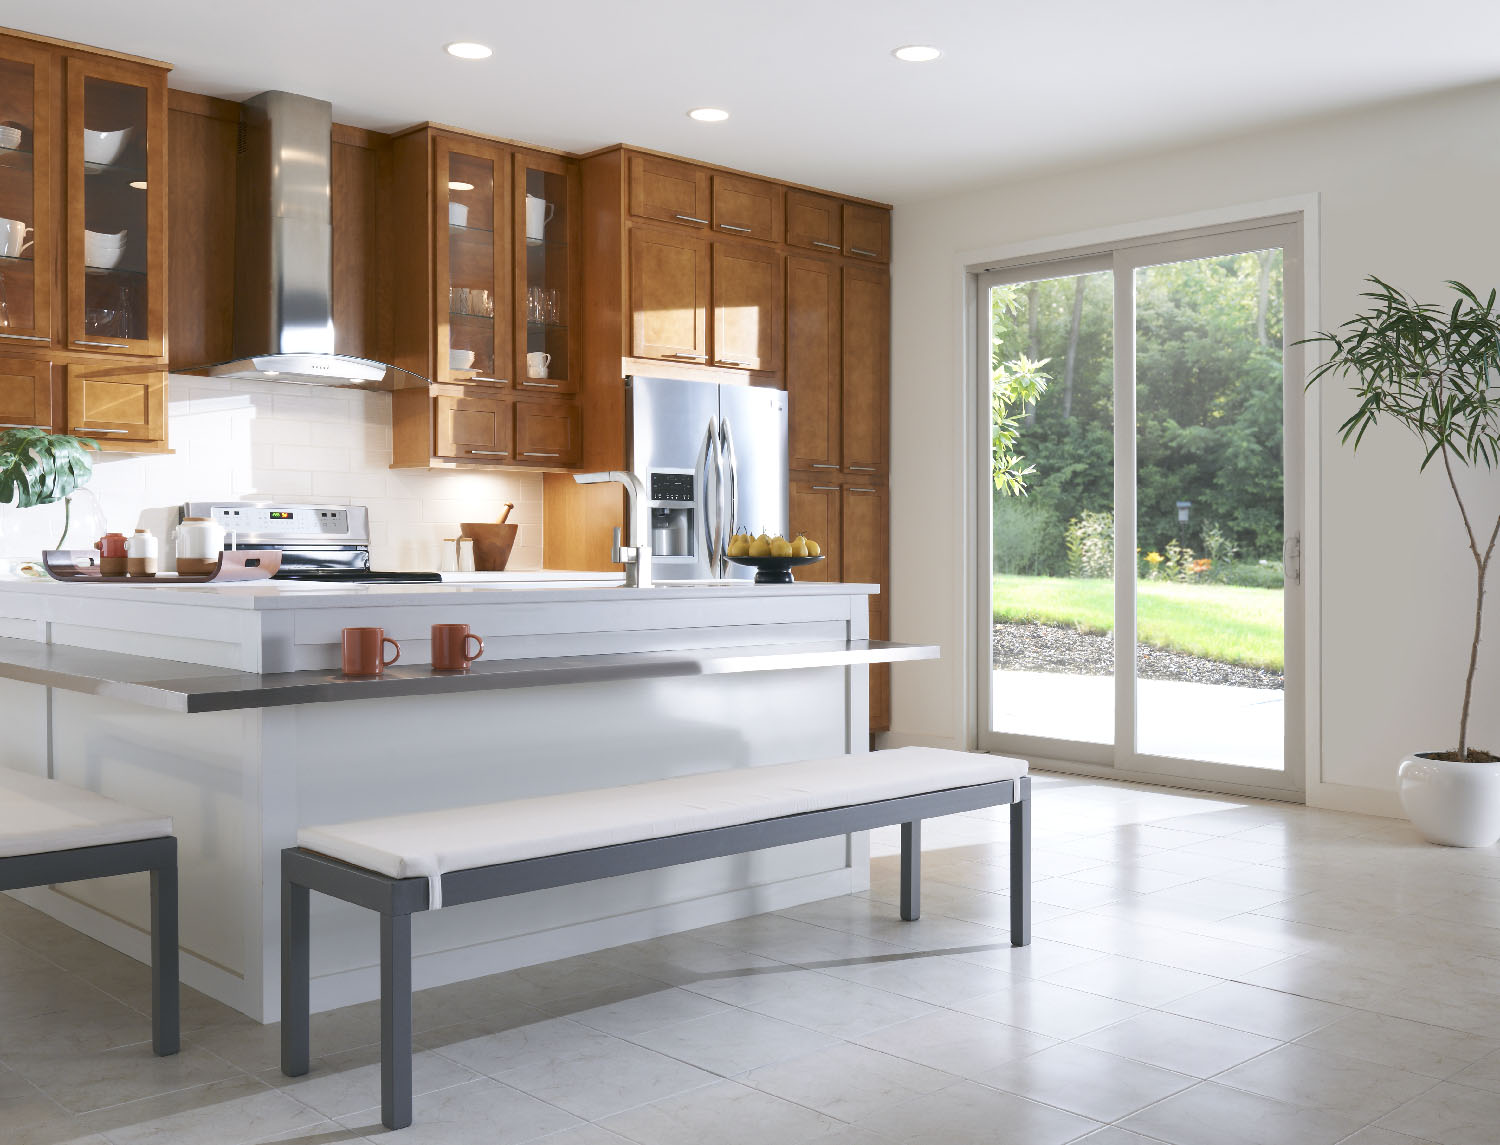 Gallery archive page 4 of 10 simonton windows doors Kitchen design patio doors